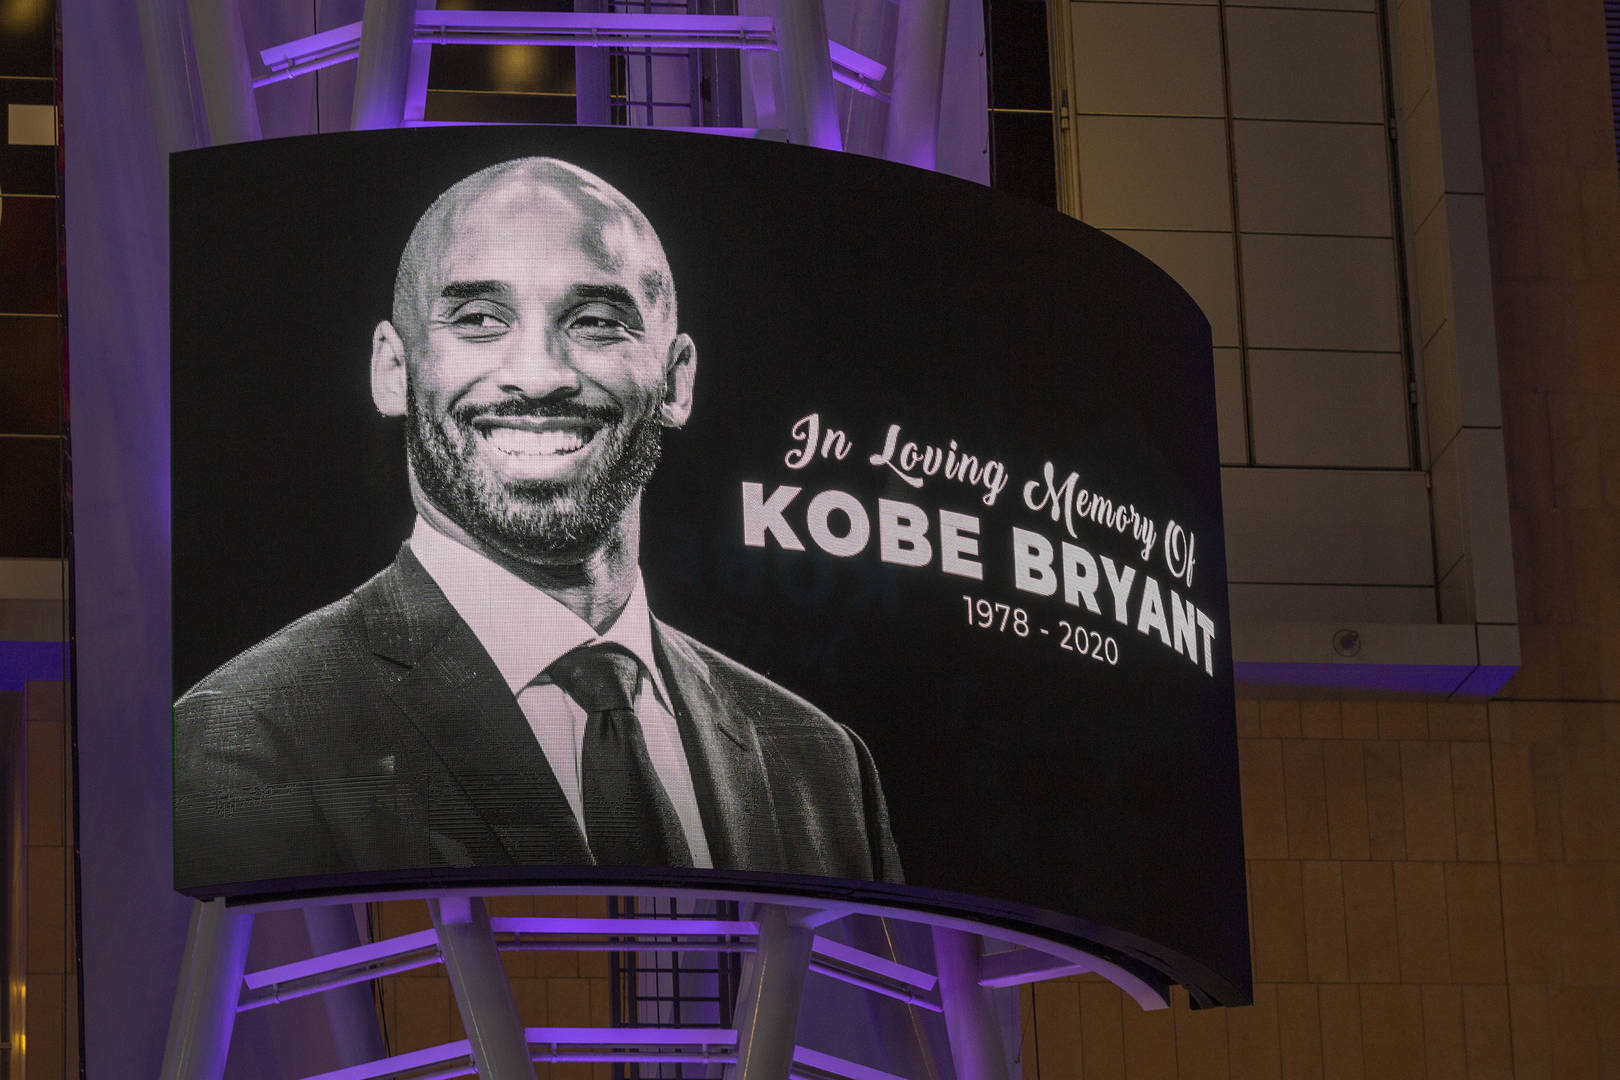 Kobe Bryant & Gianna Bryant Mural Appears In Los Angeles Following Their Deaths